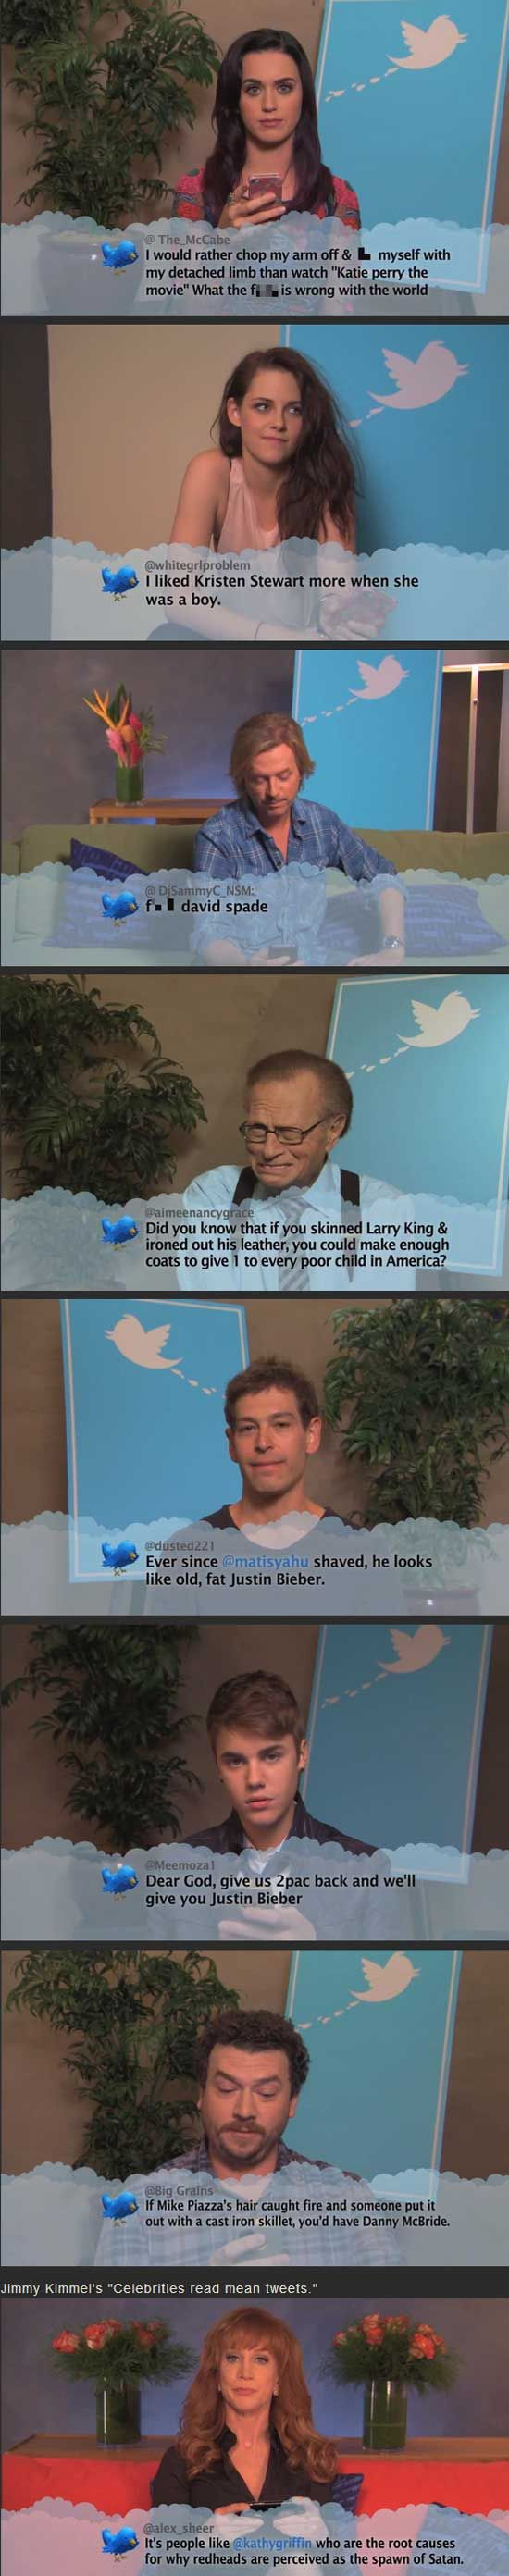 Celebrities read mean tweets to them. Hahahhaaa omg hahah Kristin Stewert has the same look on her face!!